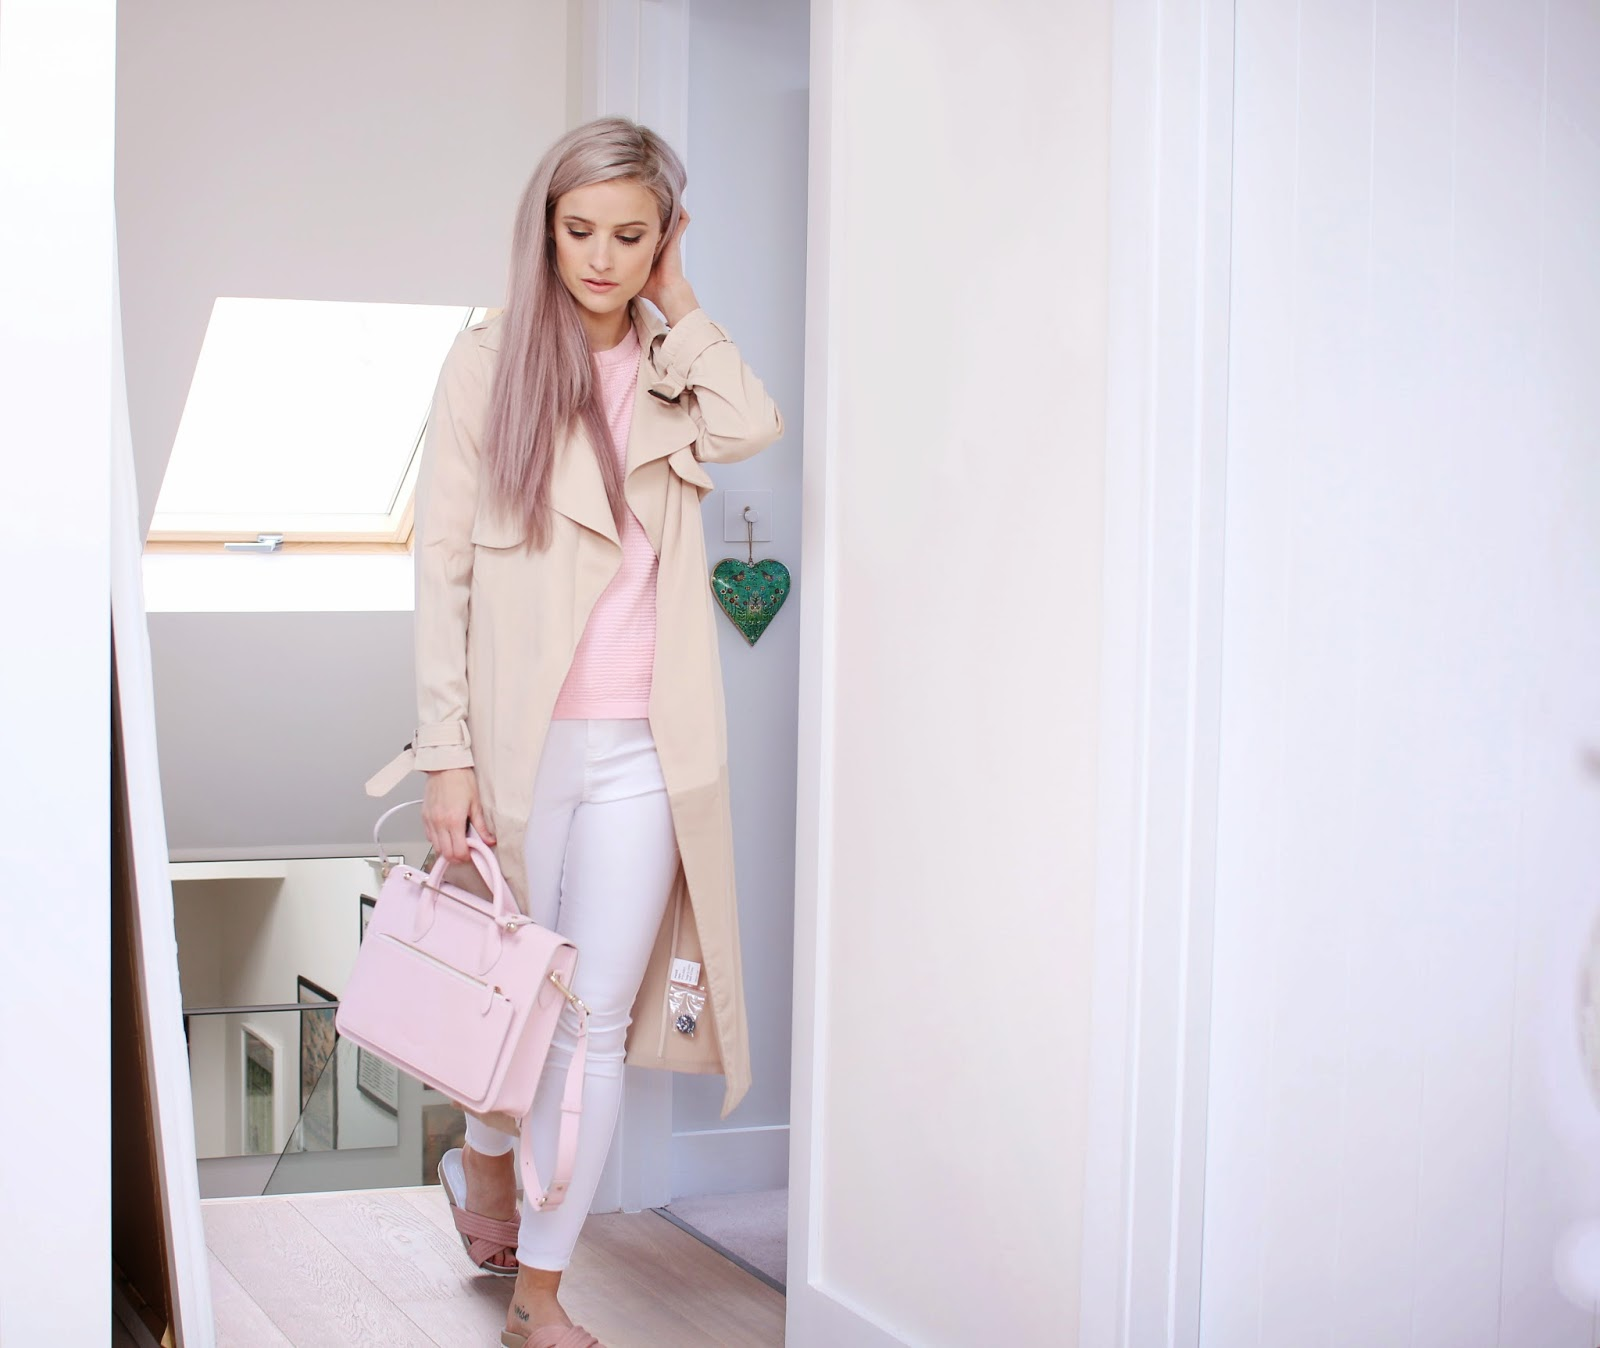 Paisie two tone mac, Just Femal Pink Esse Jumper, ASOS White grazer jeans, Dune Sliders, Strathberry of Scotland Mini Tote in Pink